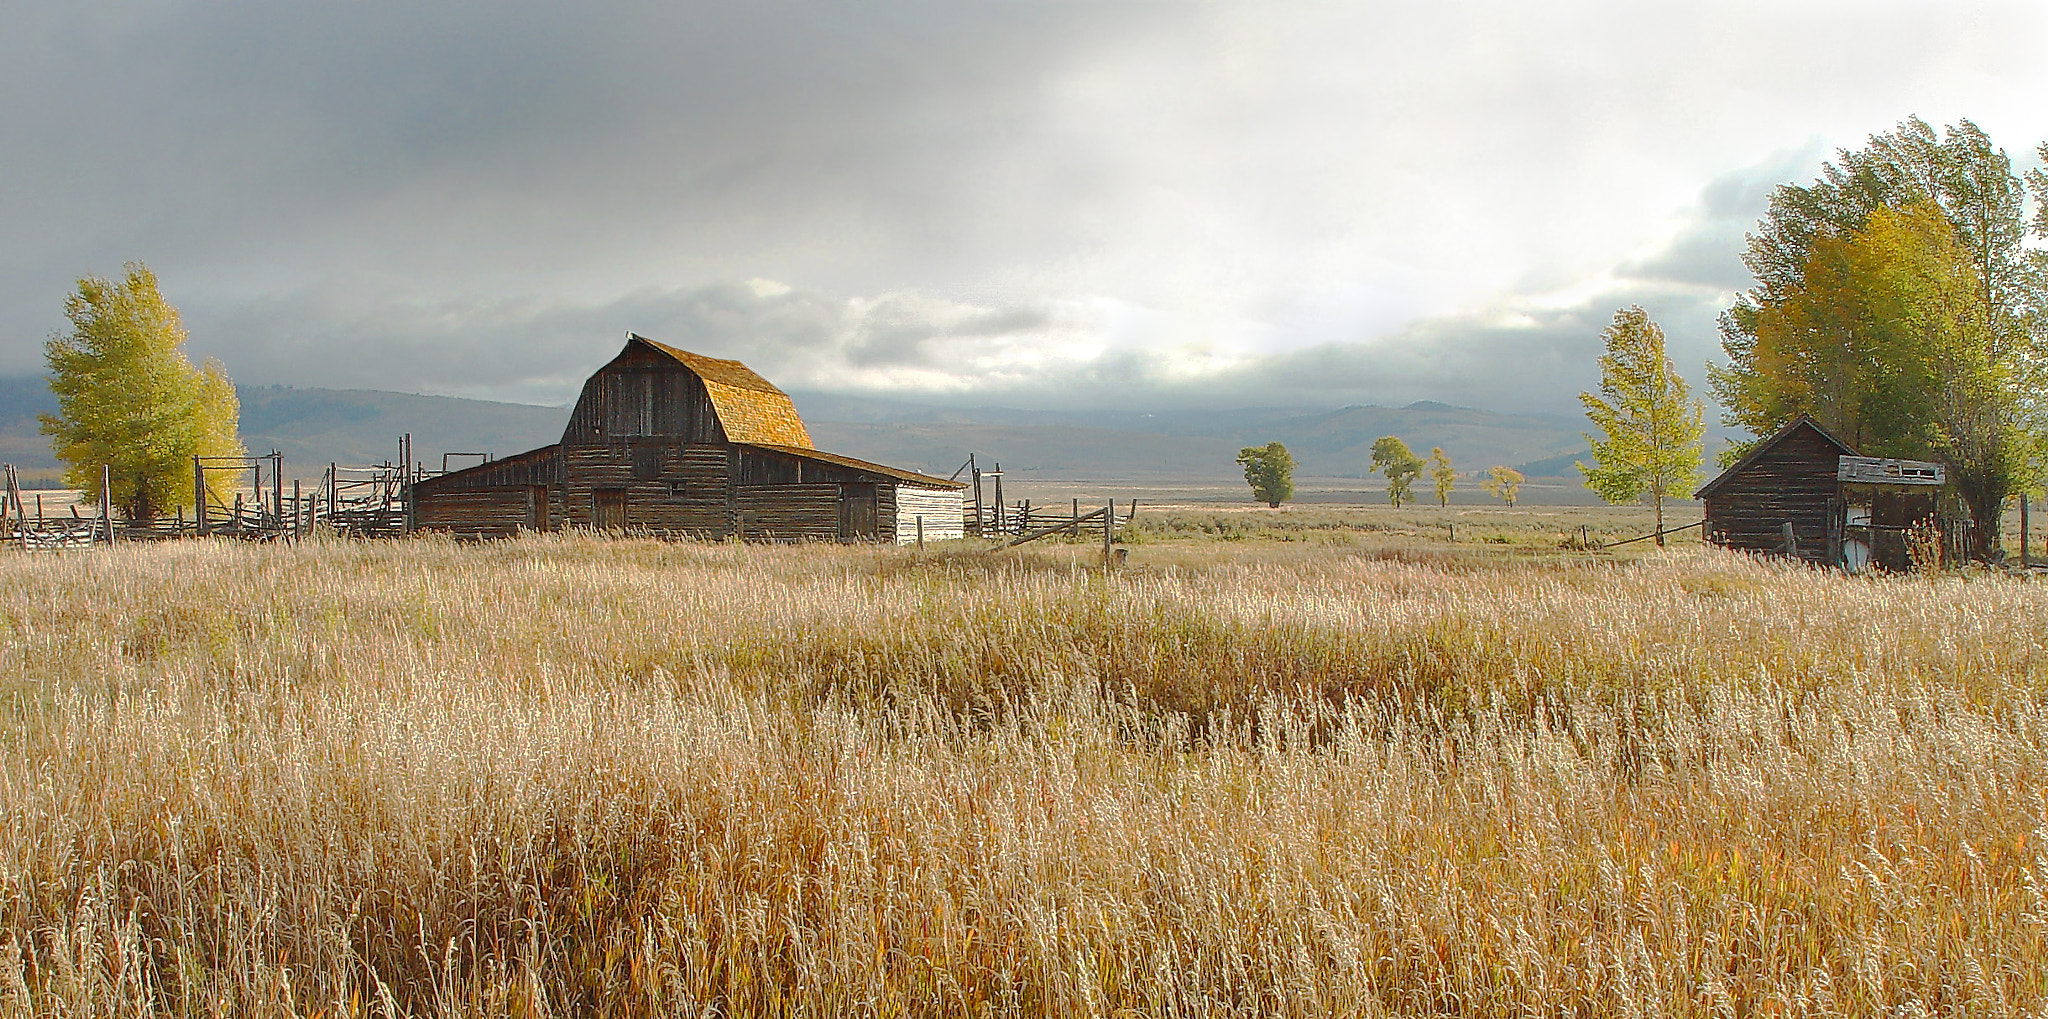 Photograph Barn In Morning Light by Stan Petersen on 500px